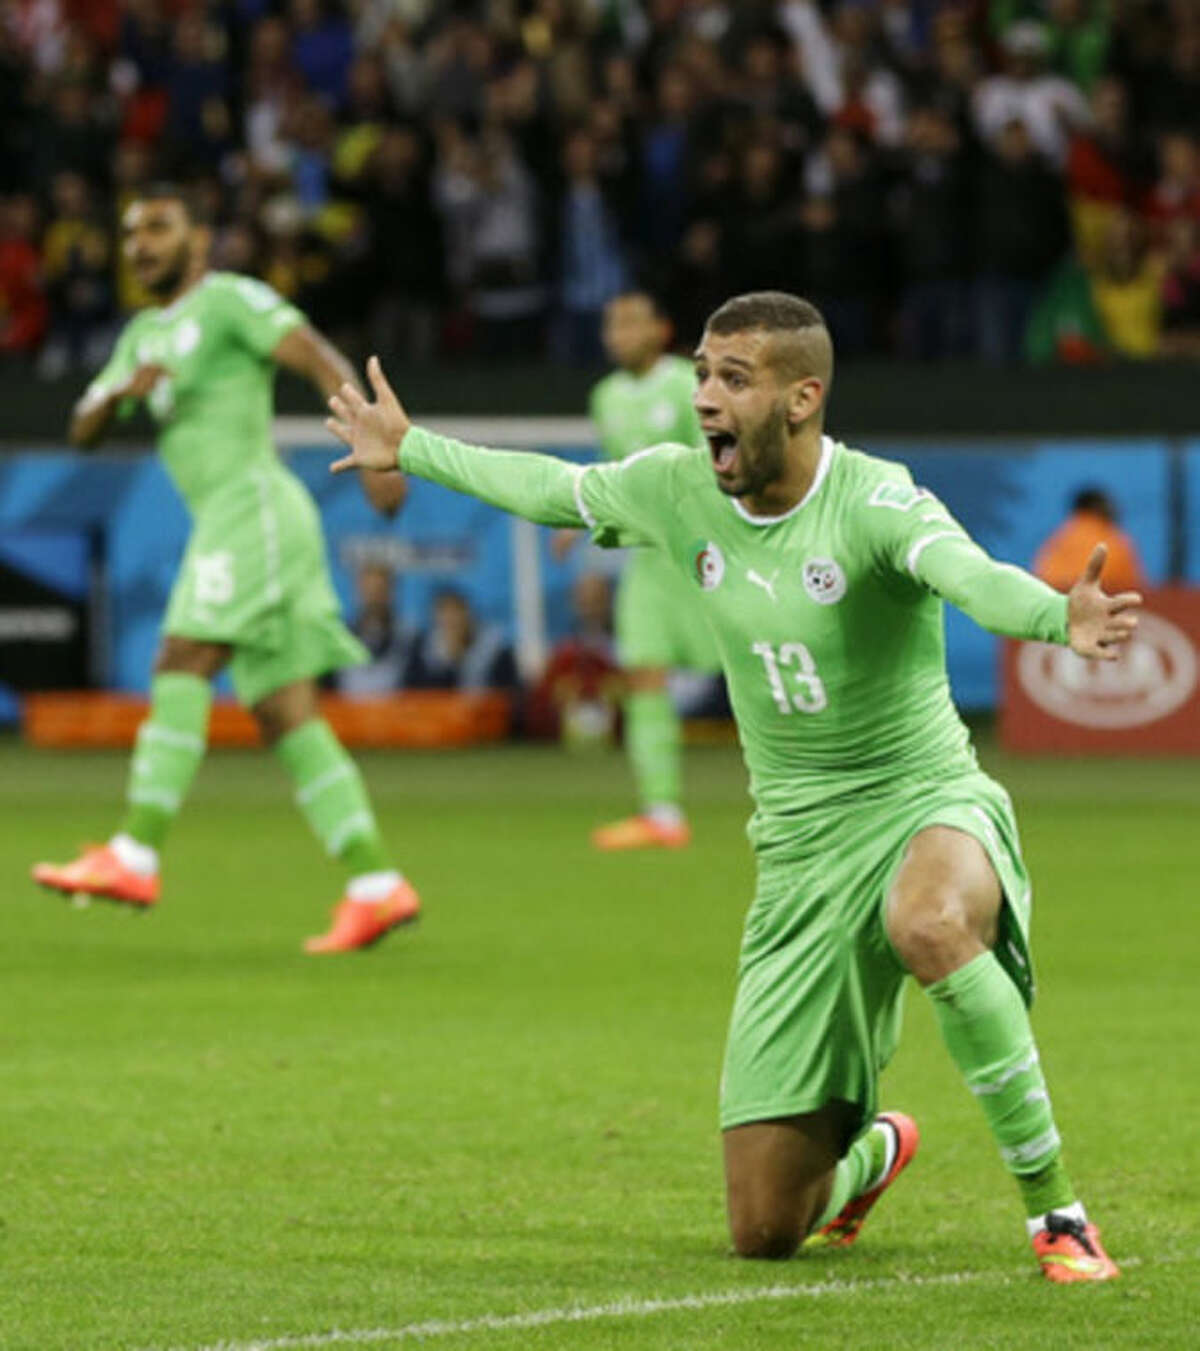 Algeria's Islam Slimani pleads to the referee for a call on a play during the World Cup round of 16 soccer match between Germany and Algeria at the Estadio Beira-Rio in Porto Alegre, Brazil, Monday, June 30, 2014. (AP Photo/Kirsty Wigglesworth)